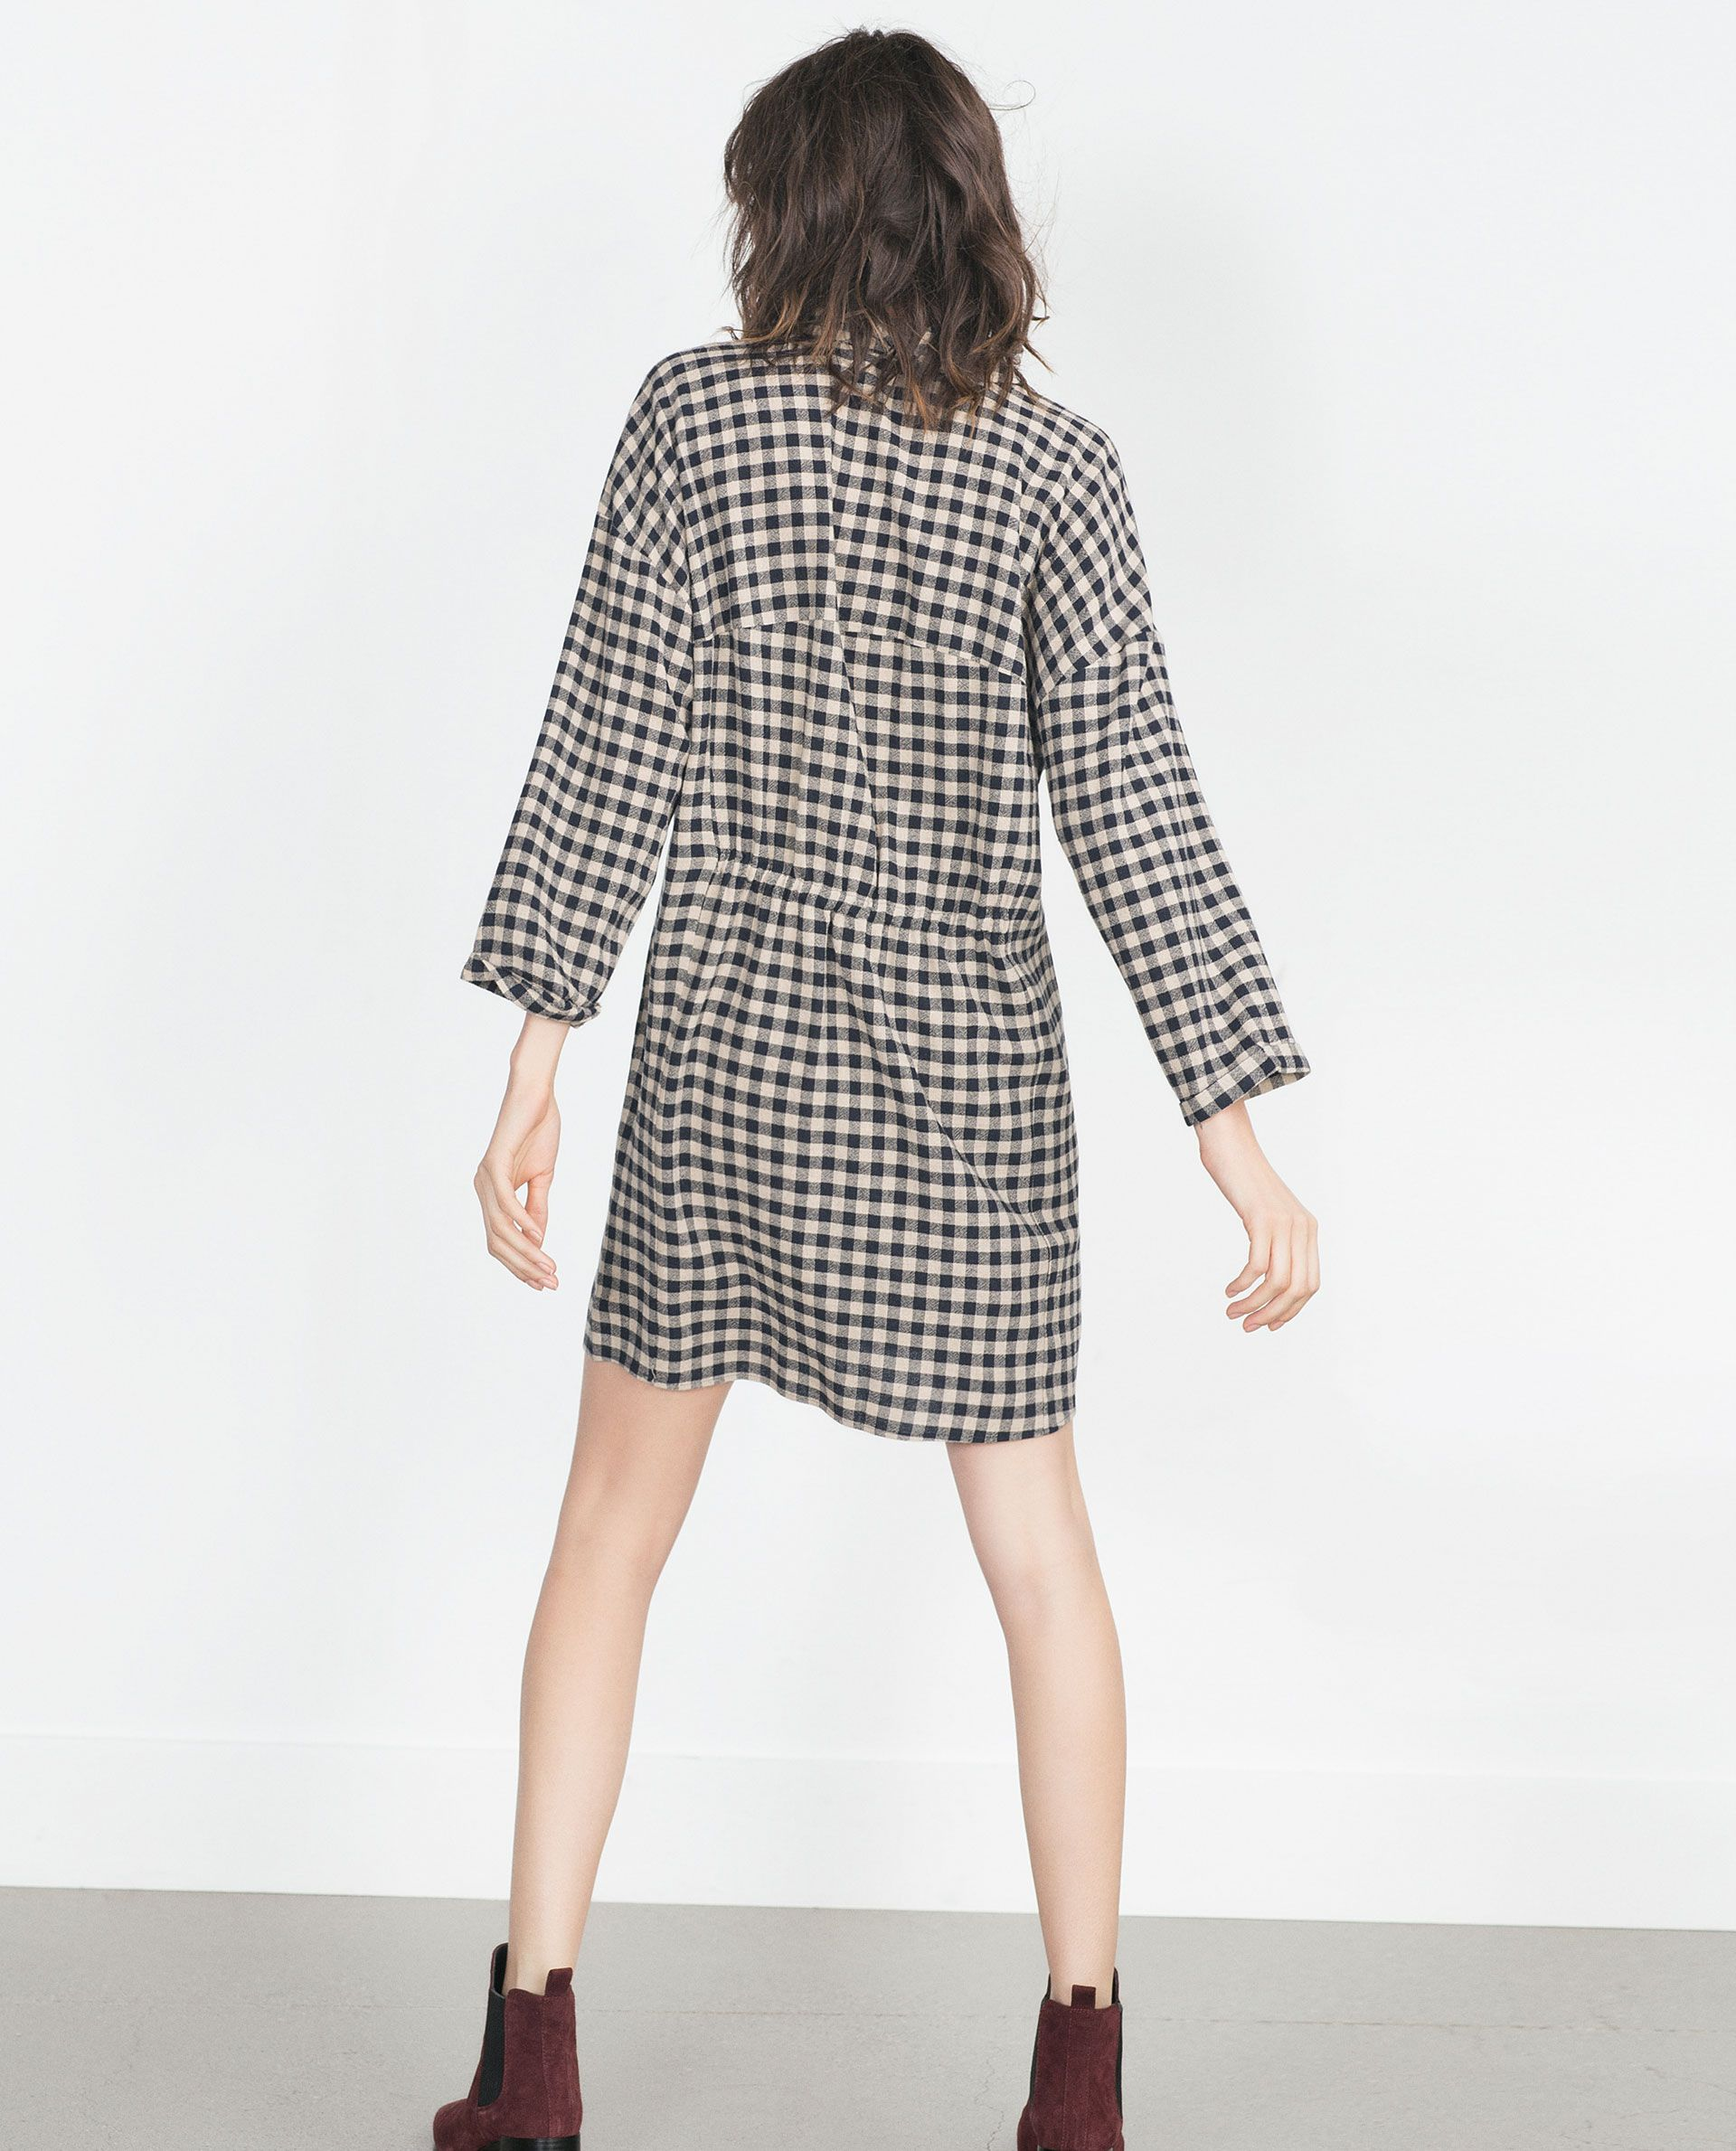 tunique a carreaux vichy robes femme soldes zara With robe carreaux vichy